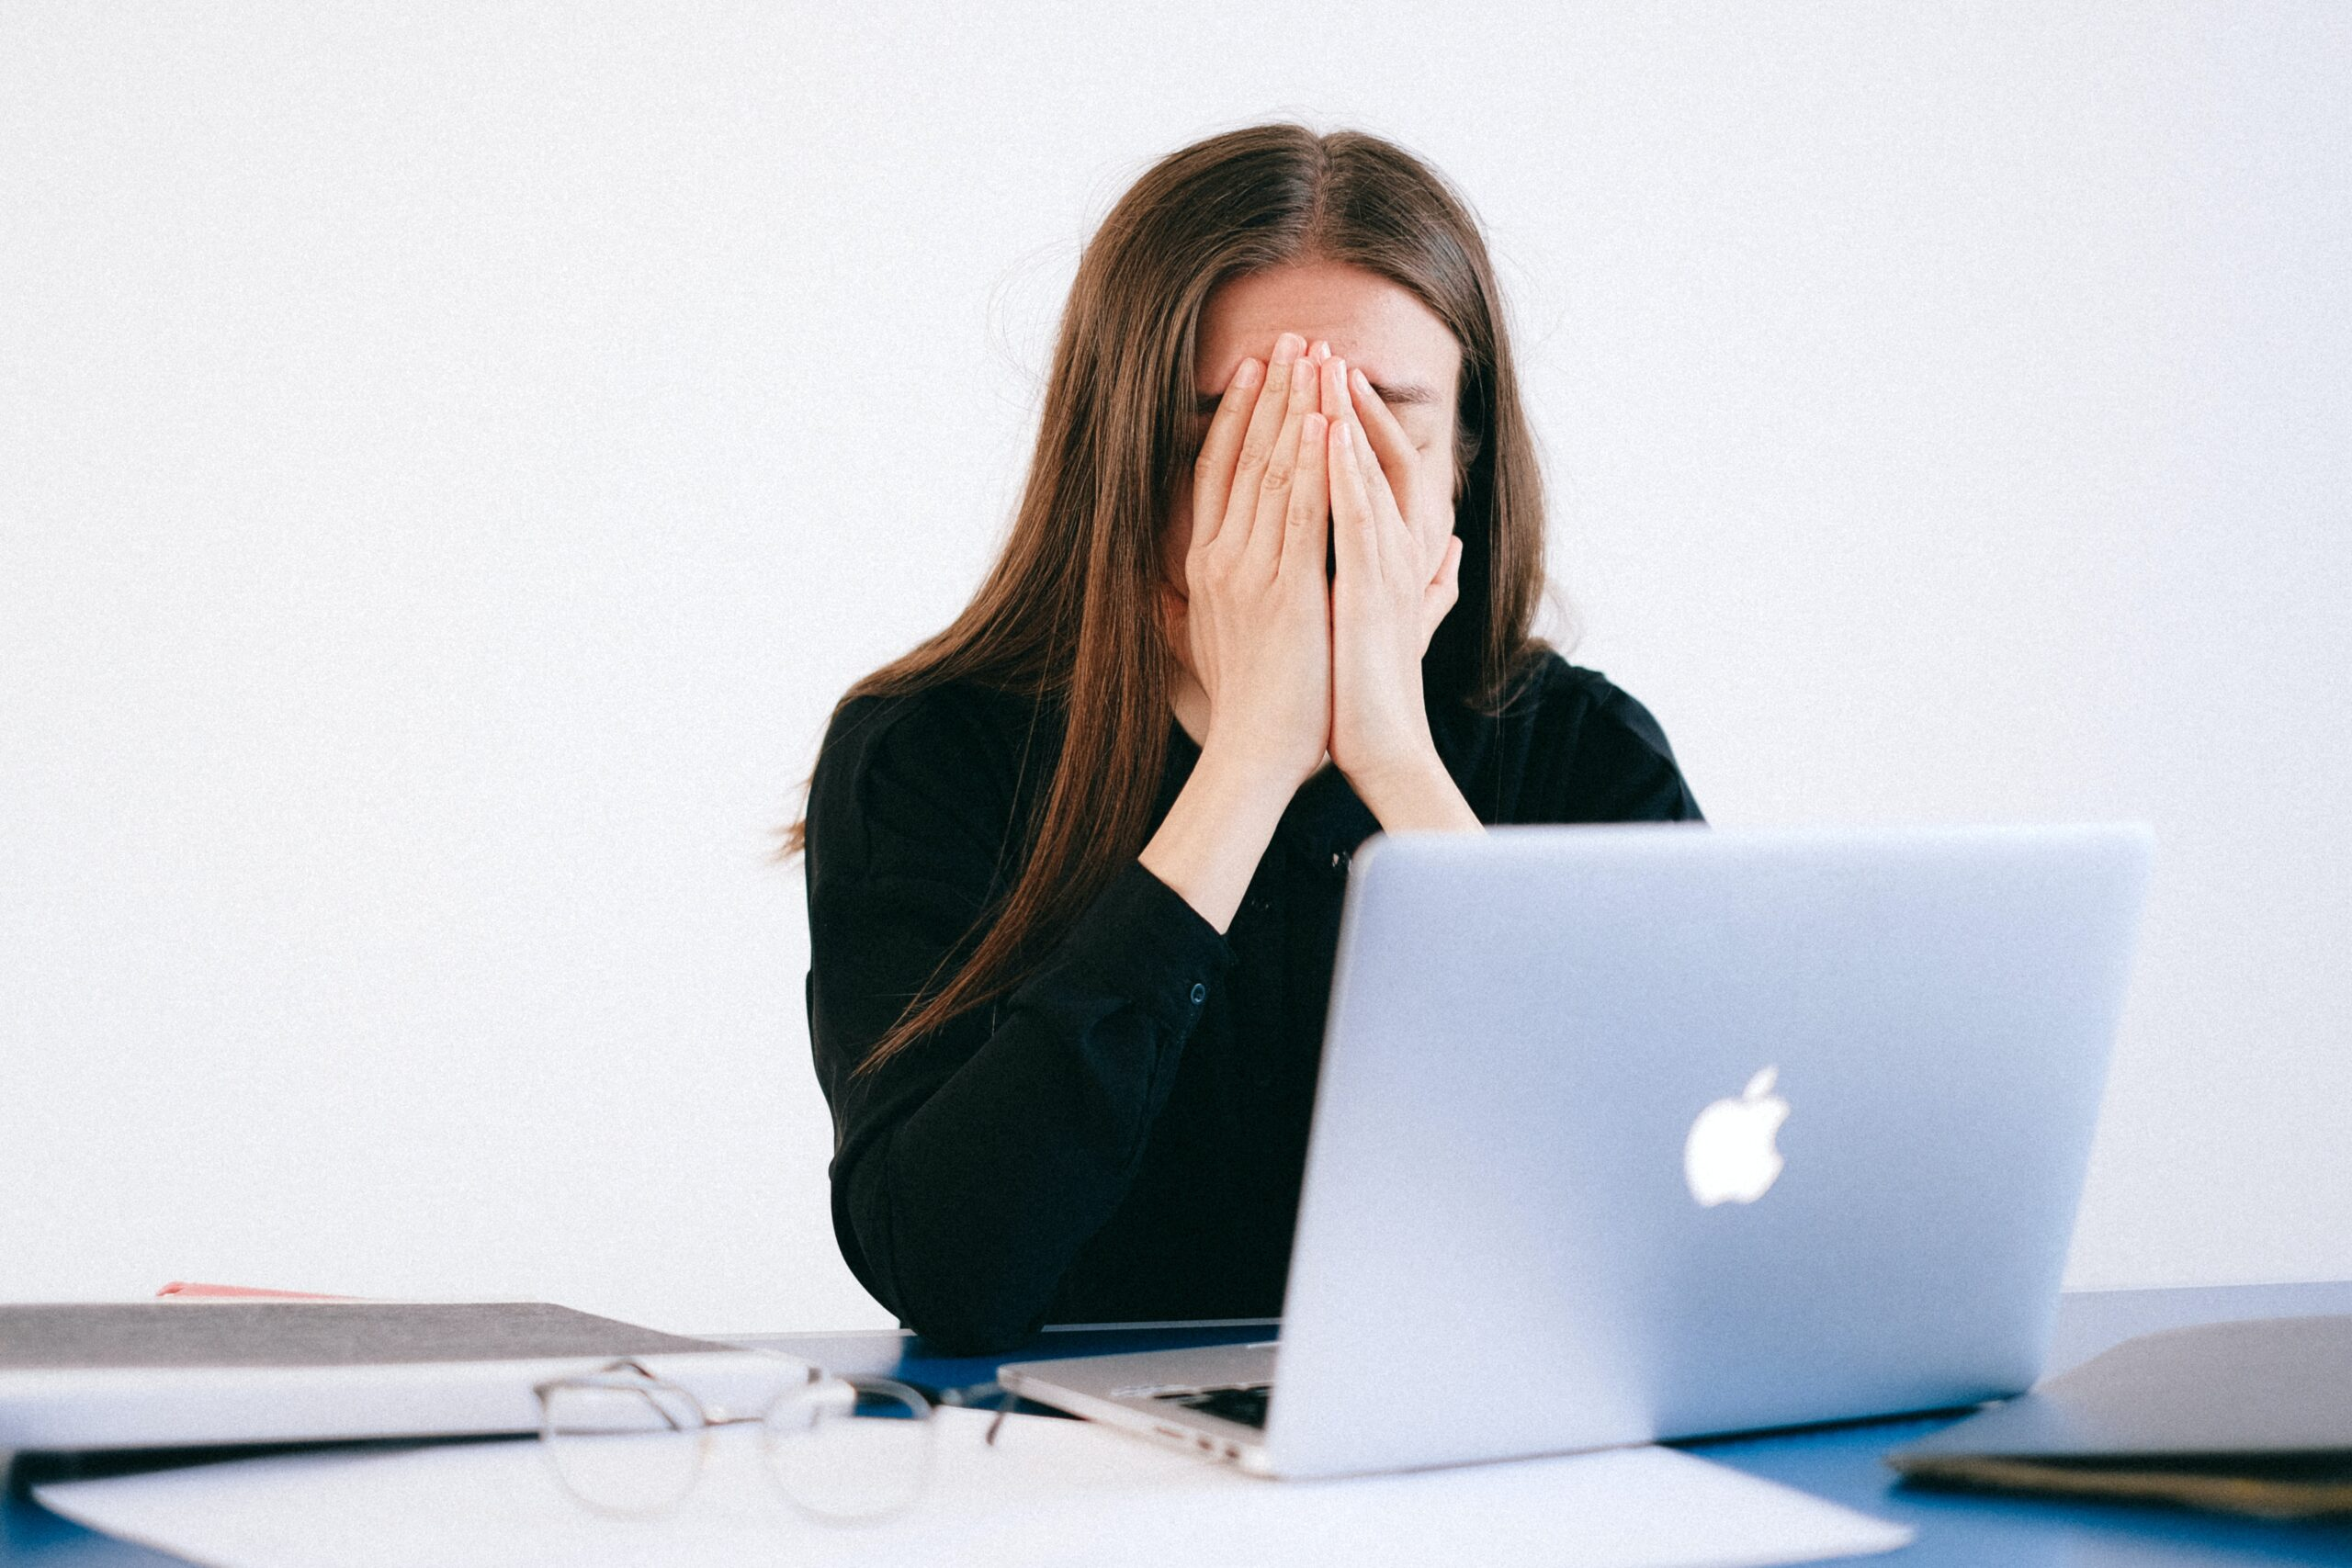 A stressed-out employee sits at a laptop with their face in their hands.